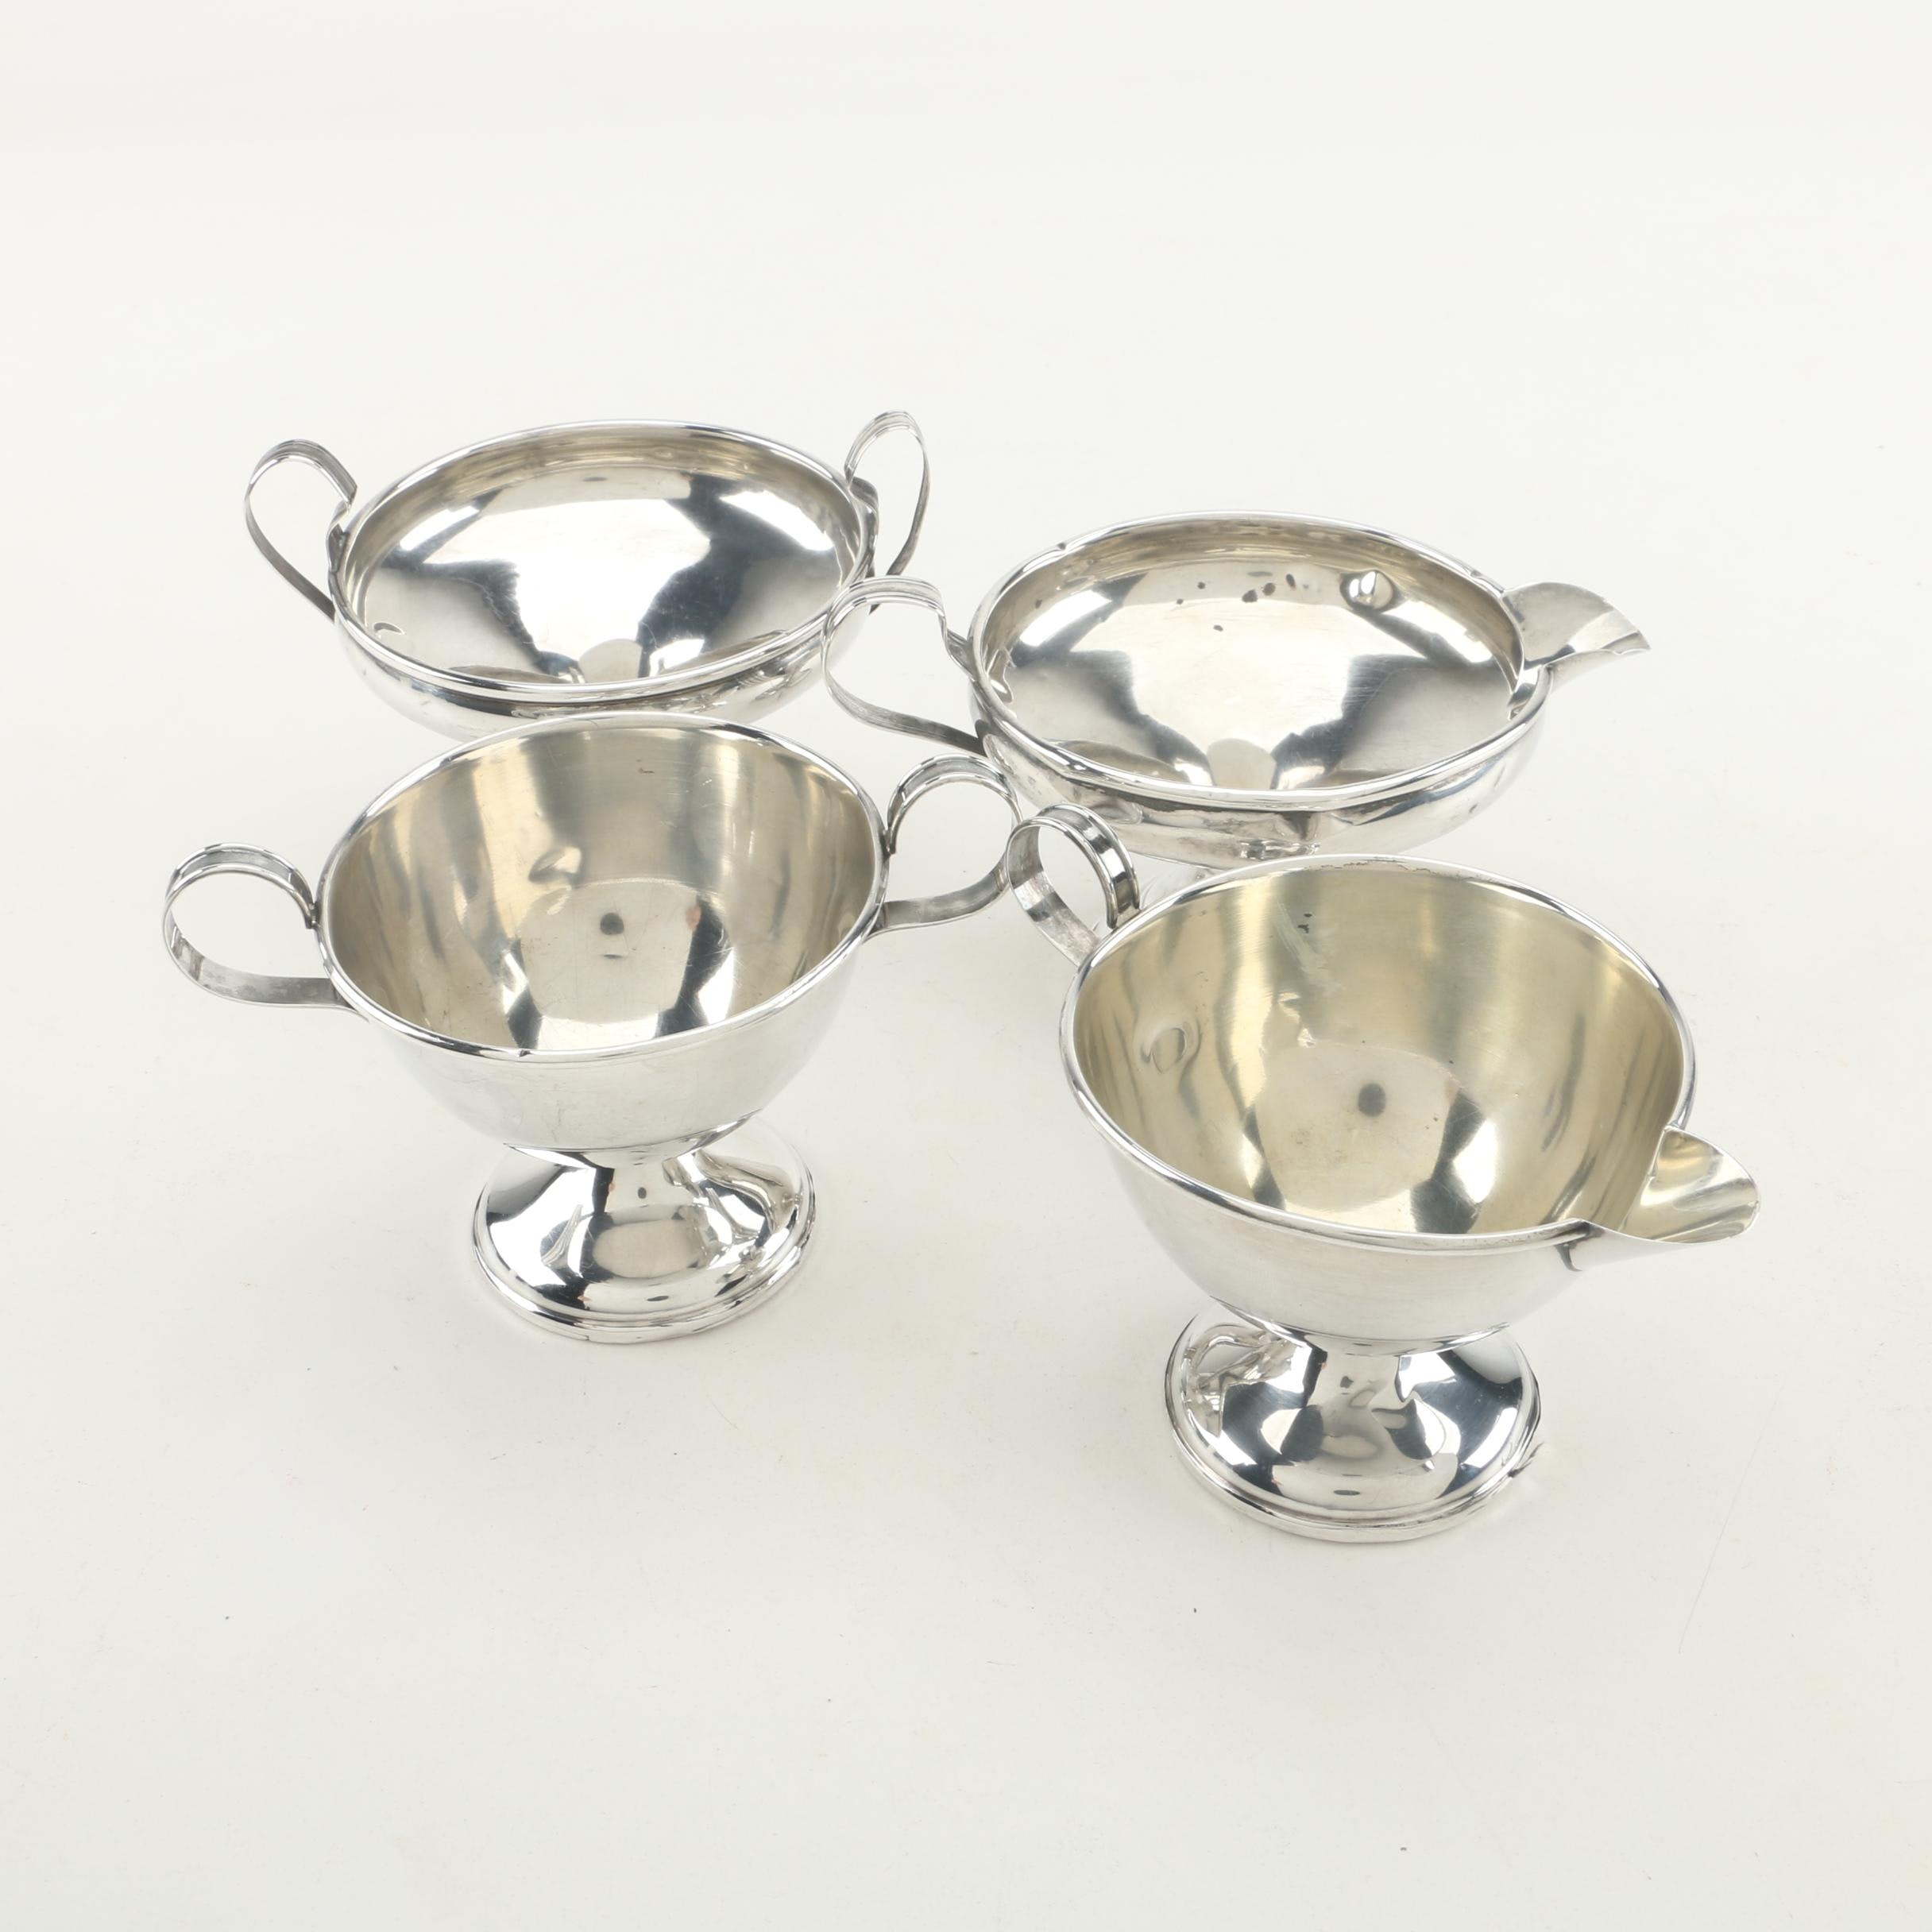 Vintage Weighted Sterling Sugar and Creamer Sets featuring Elgin Silversmith Co.